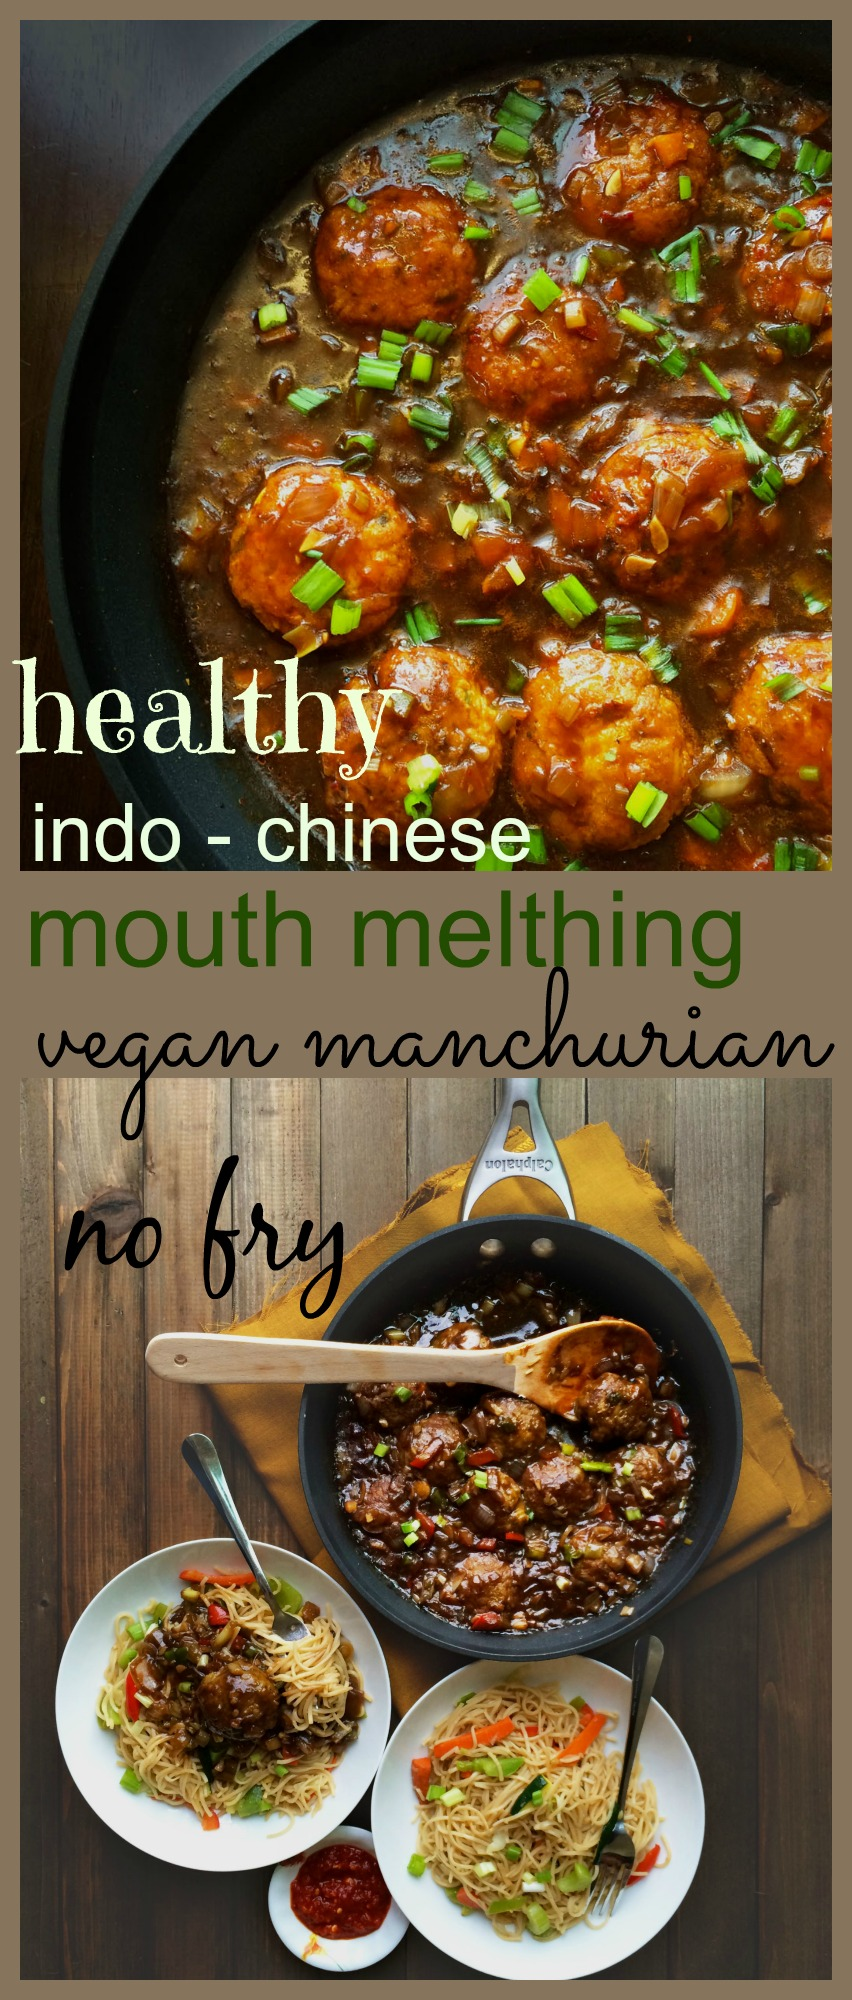 vegan healthy veg manchurian -no fry